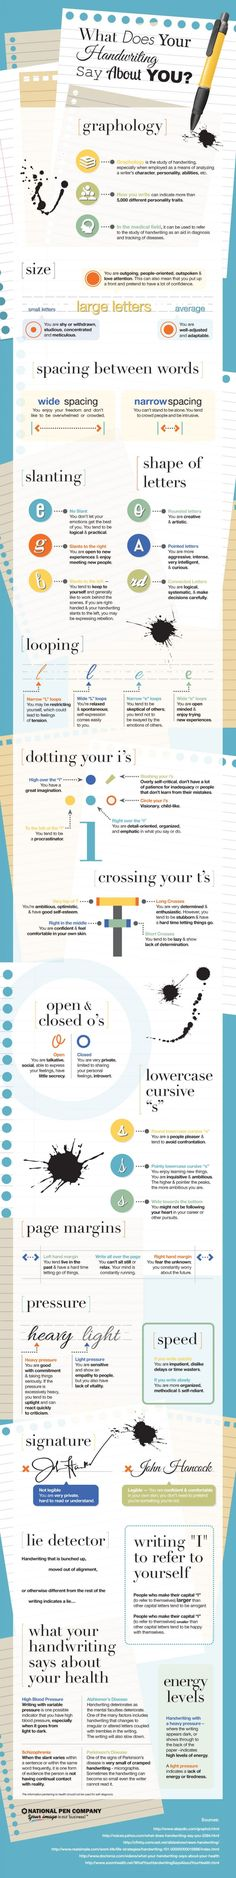 What Does Your Handwriting Say About You? #Infographic #infografía